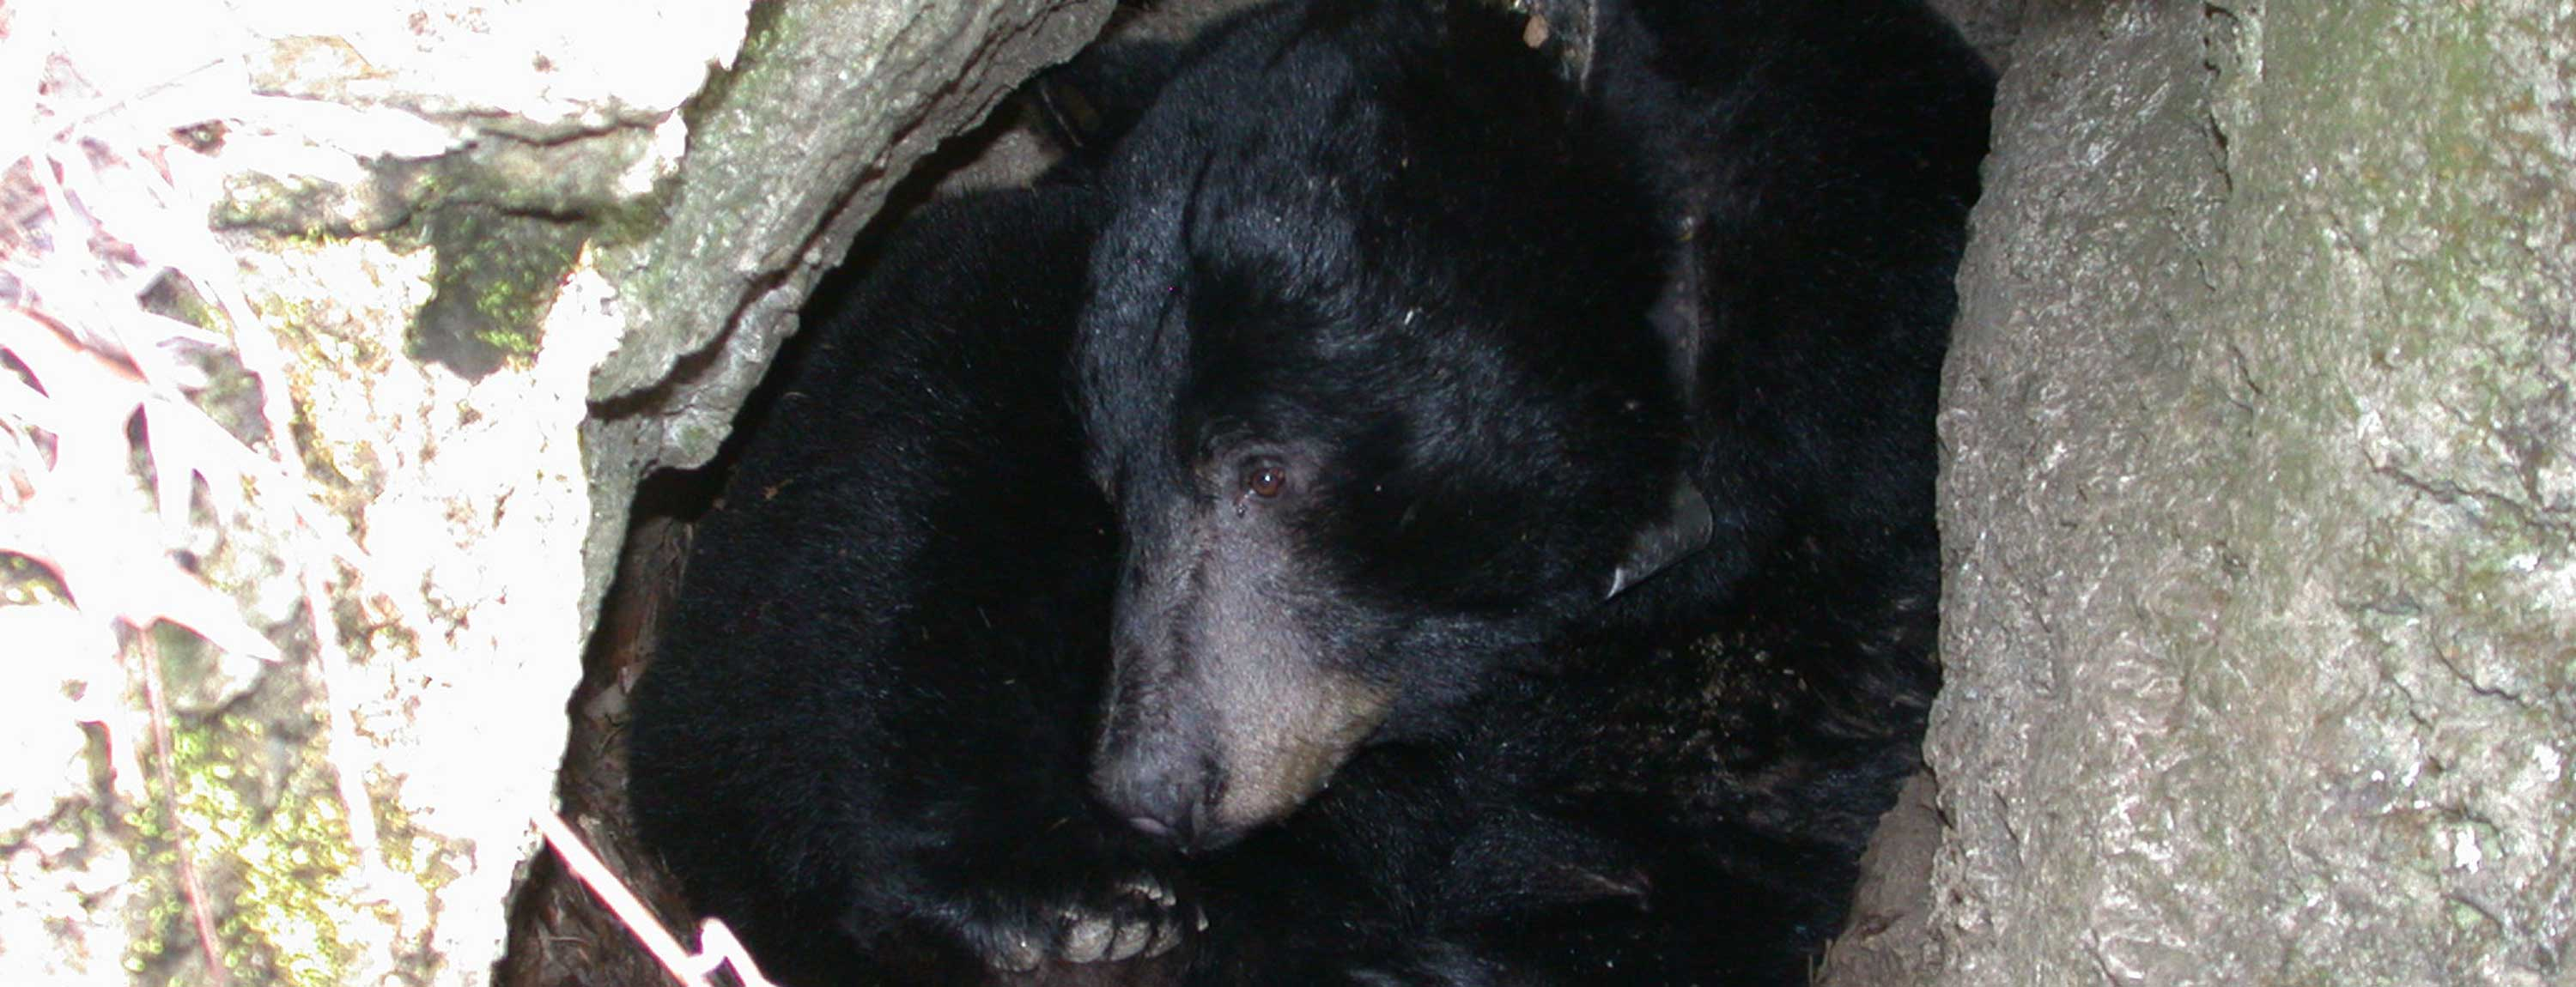 Population and Spatial Ecology of Eecolonizing Black Bears in Missouri.